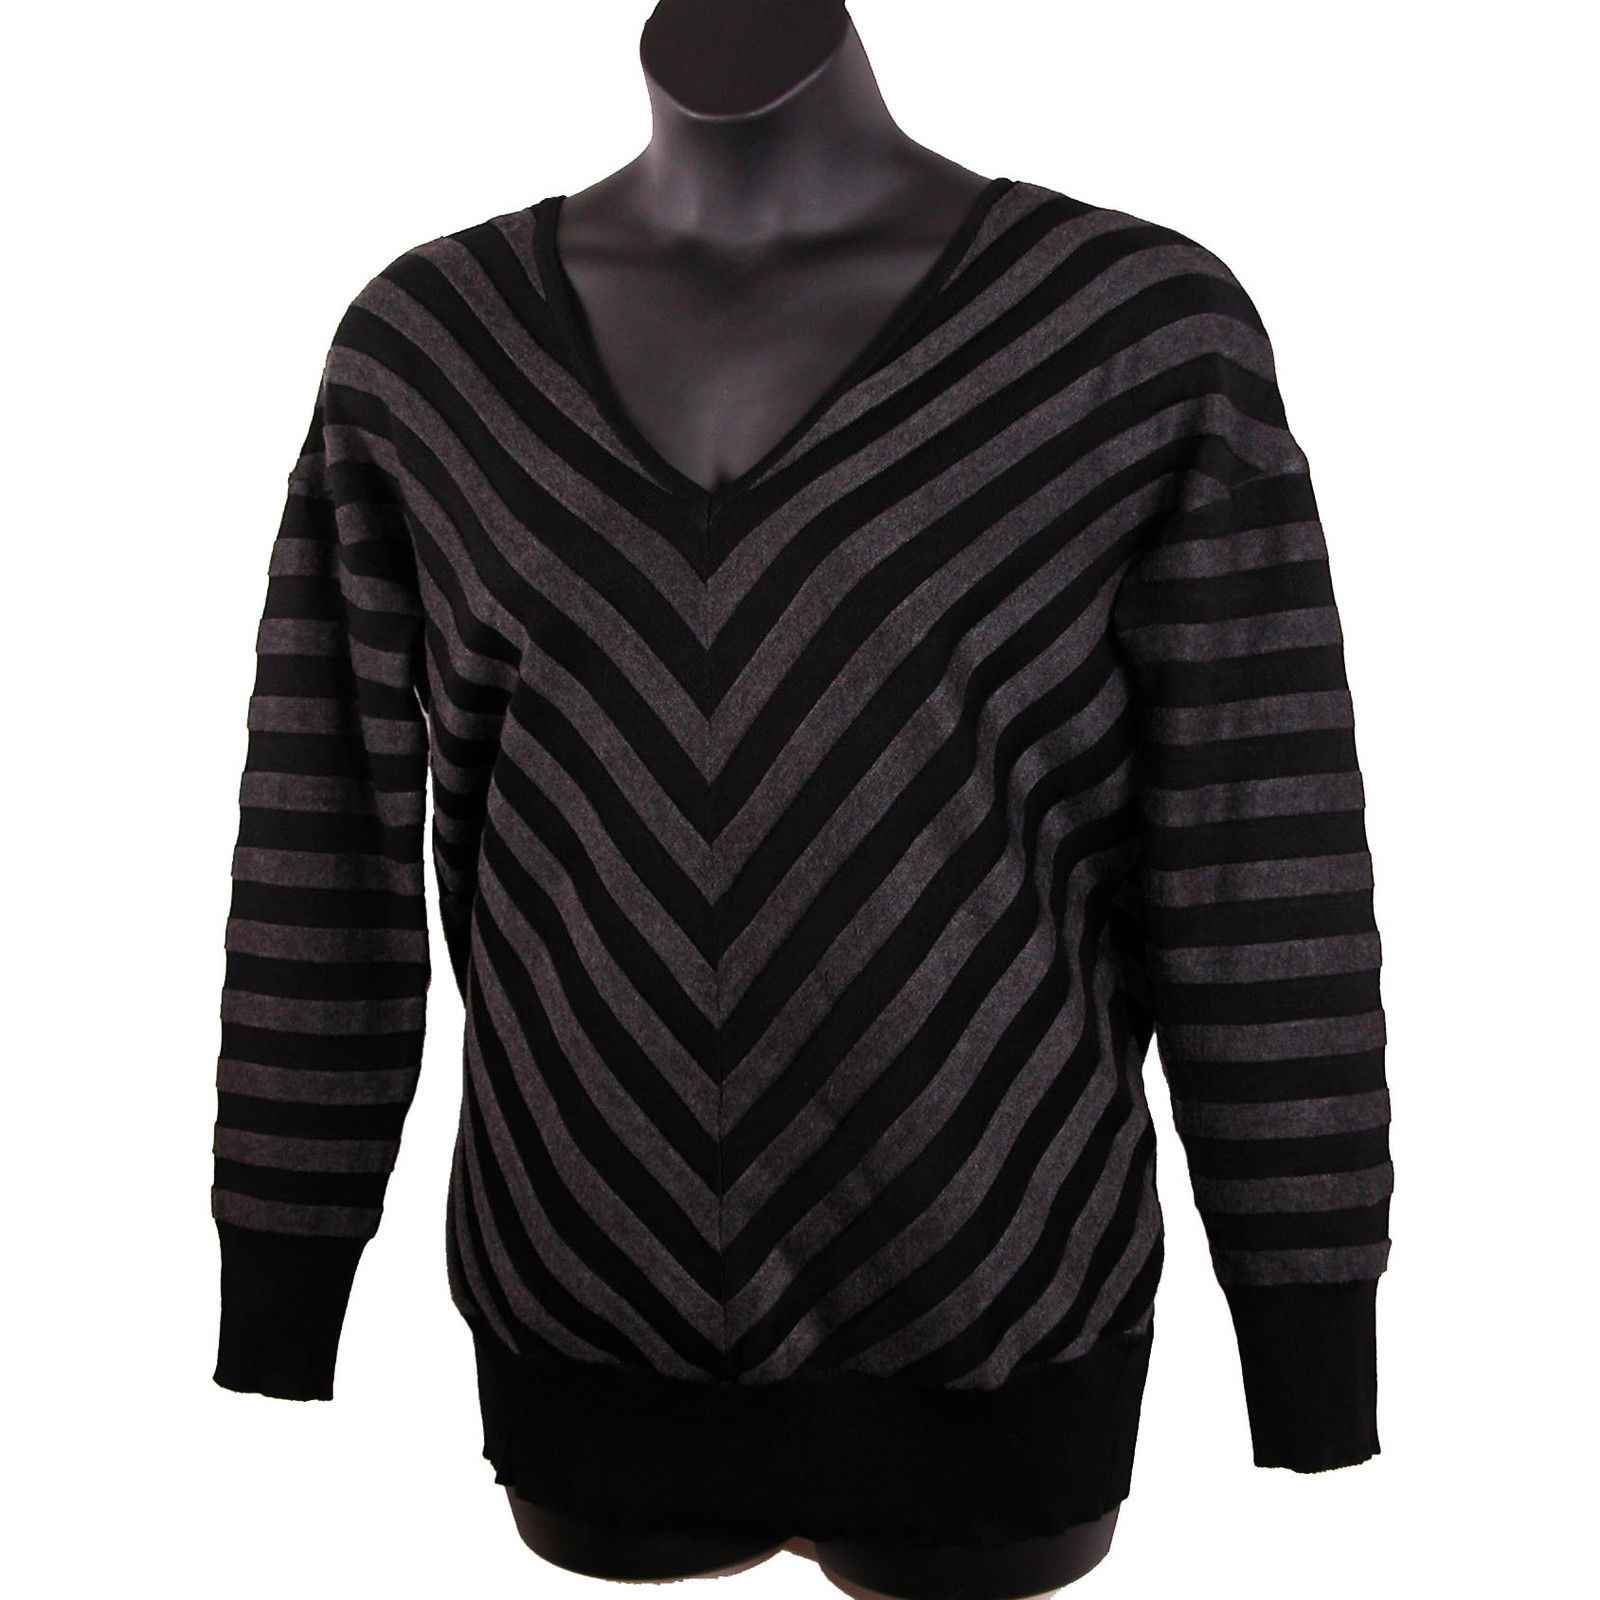 afb00728133 Lane Bryant Womens Sweater 14 16 Double and 30 similar items. S l1600